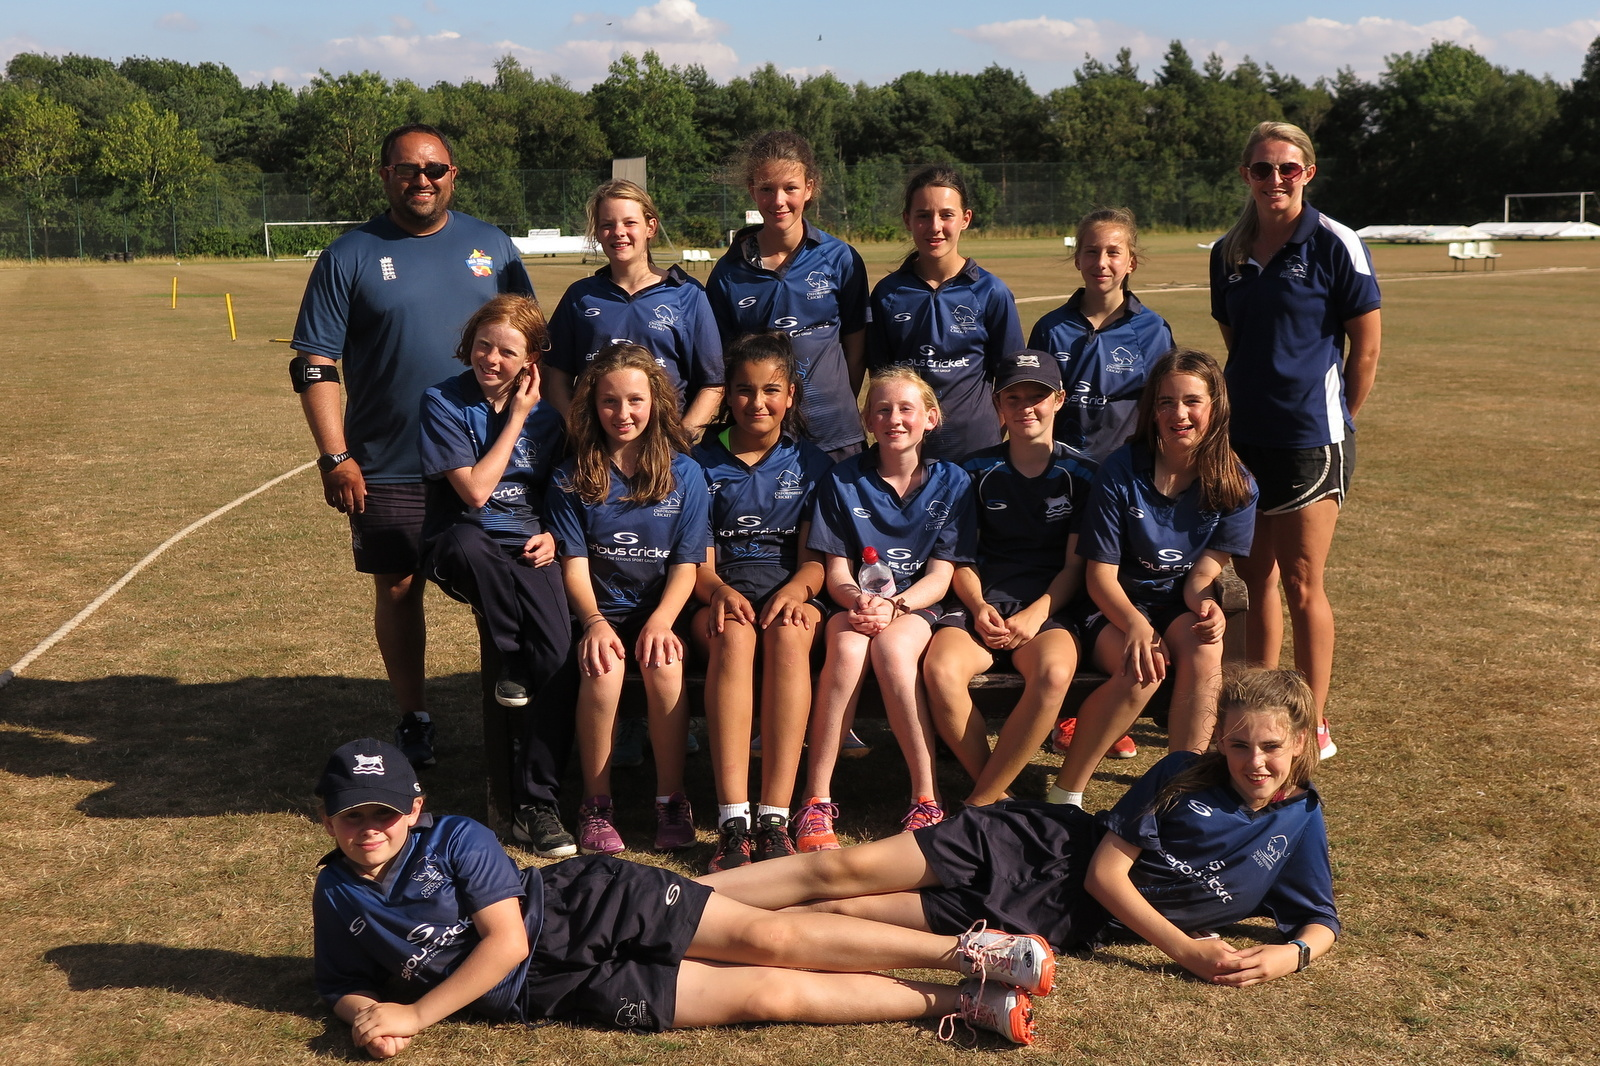 LINING UP: Oxfordshire Girls' team Under 13, who lost narrowly to Warwickshire at Kenilworth